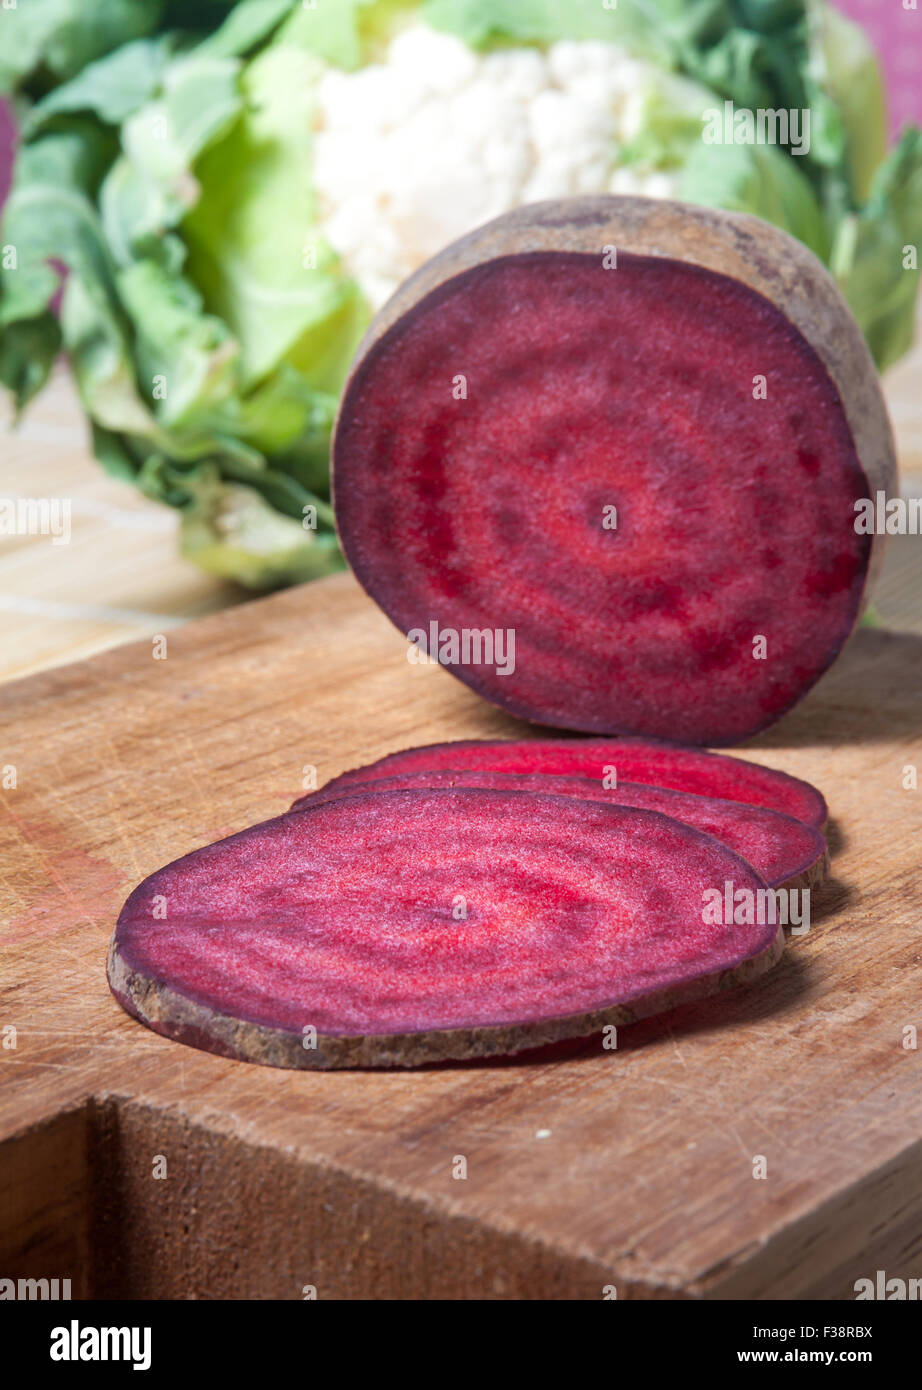 Vegan Salami, joking slices of red beet Stock Photo